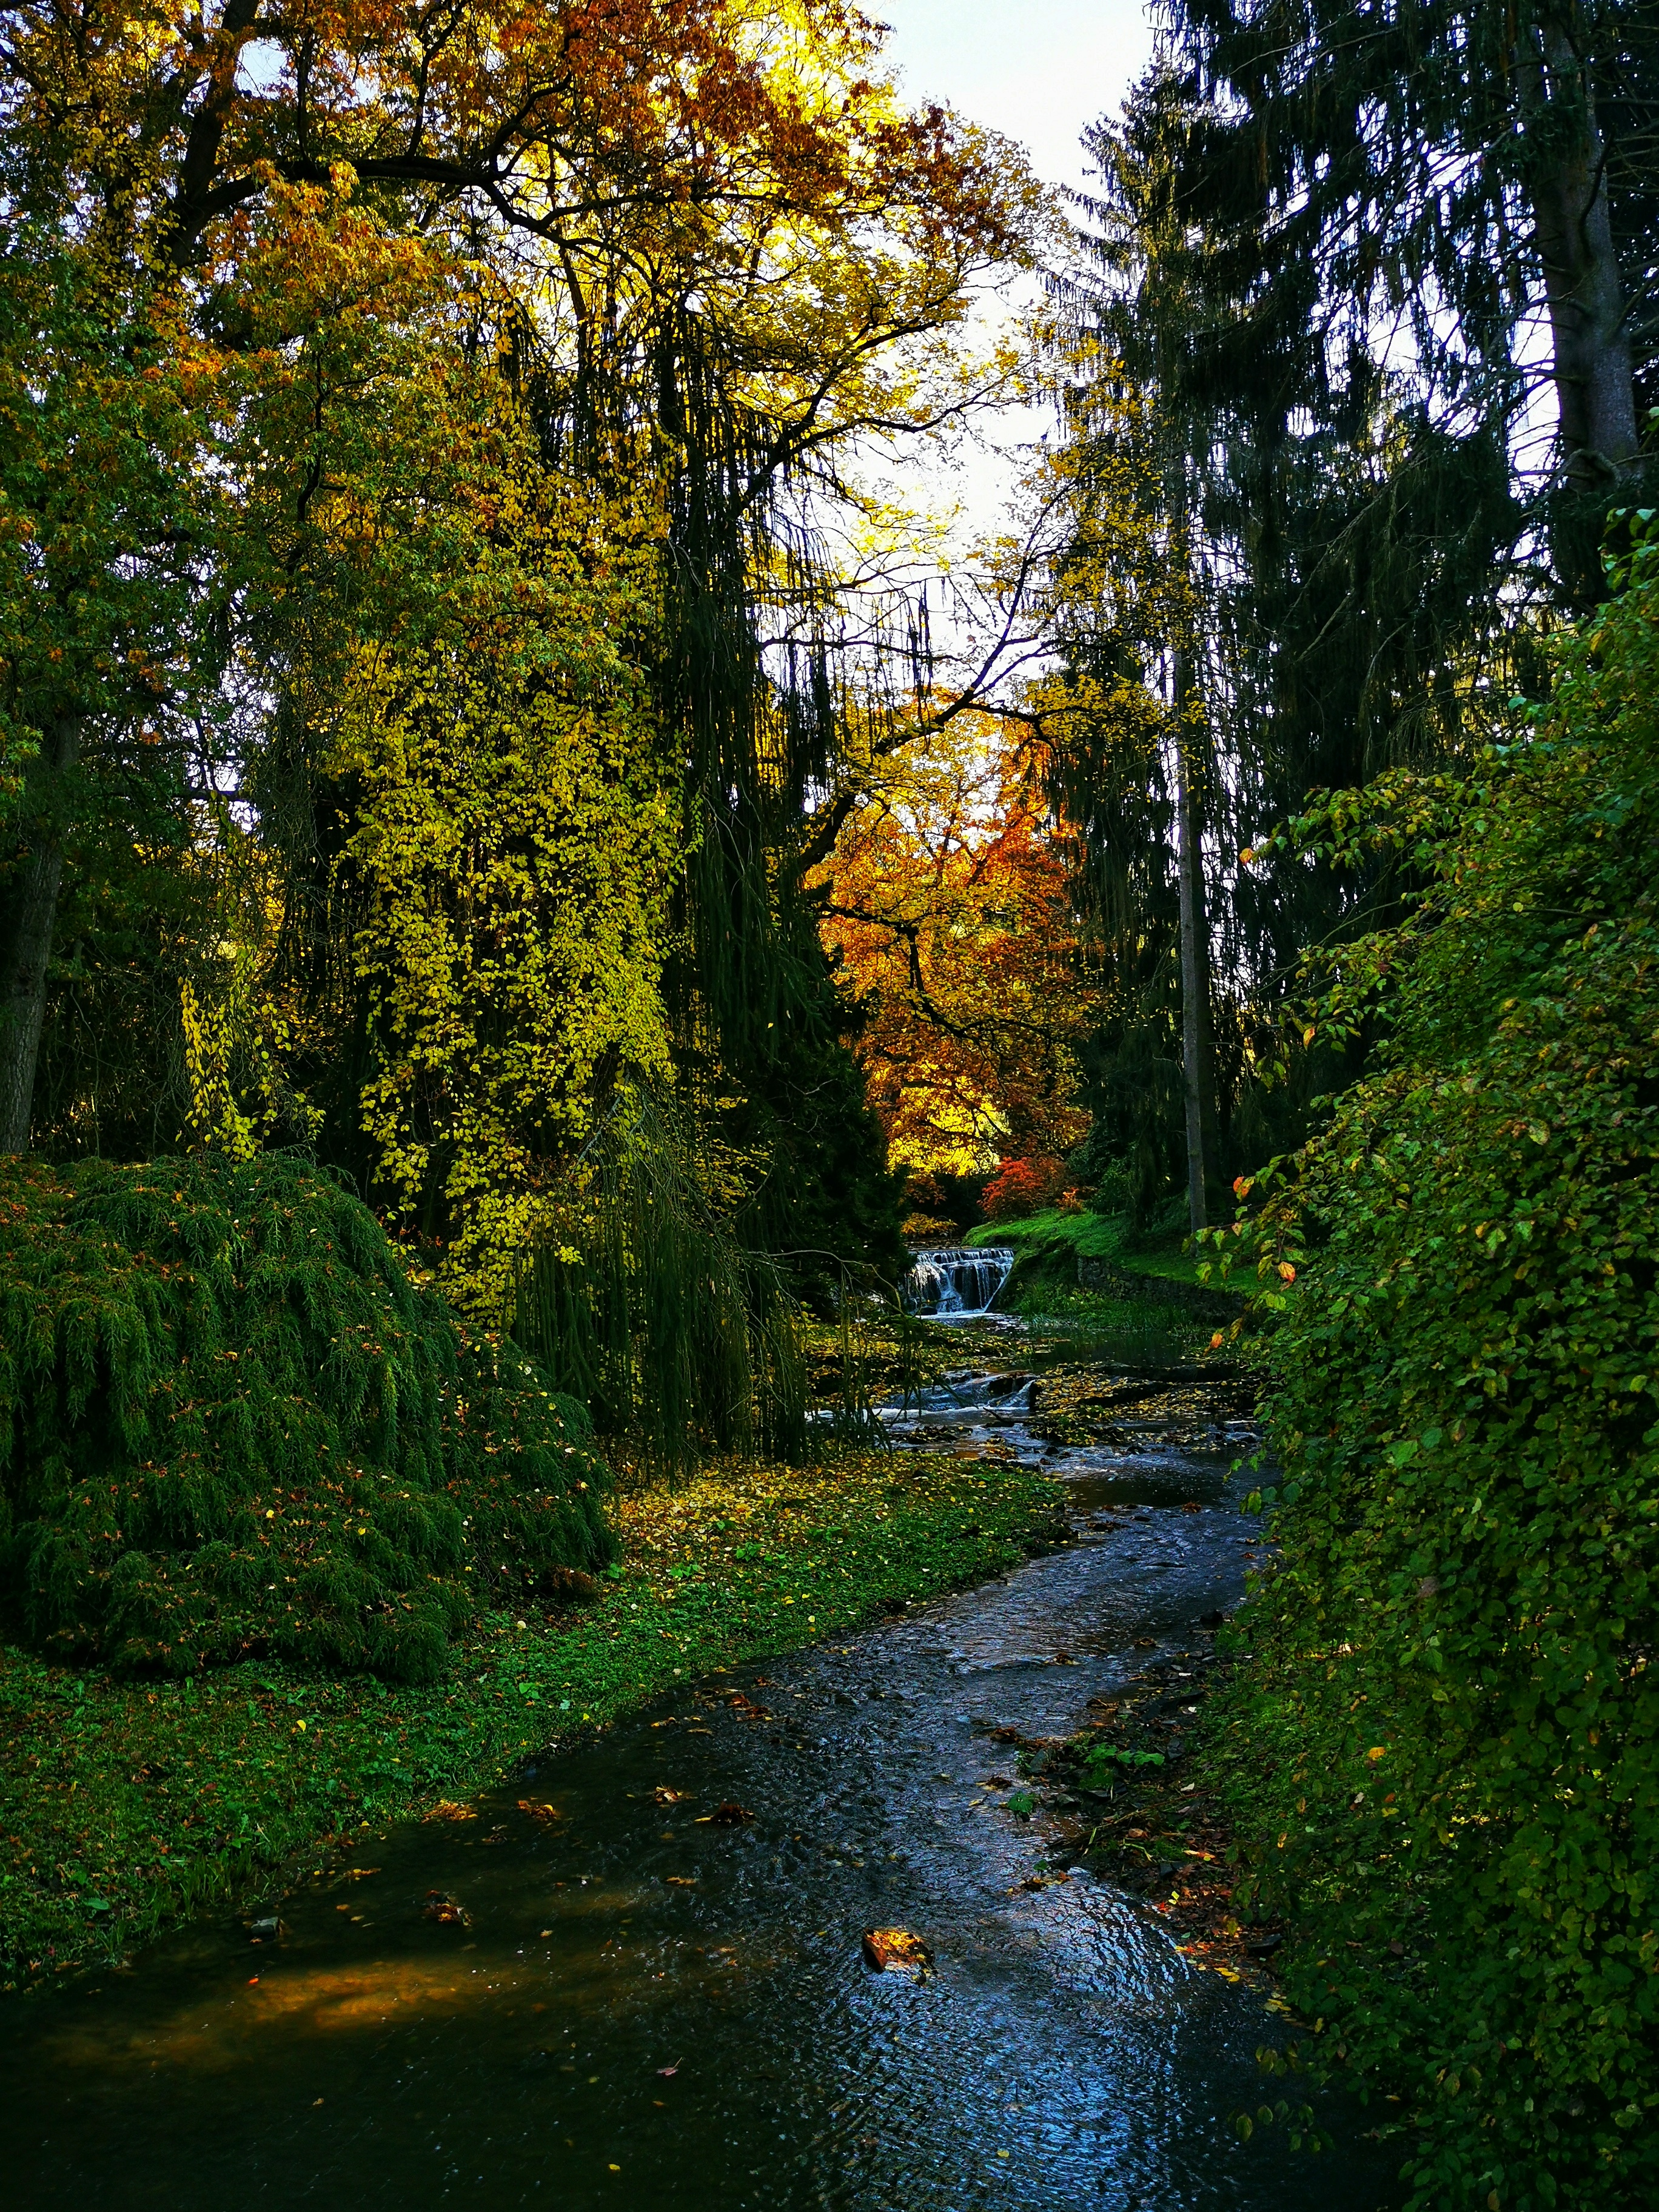 The Průhonice Park is the most significant landscape element southeast of Prague and an important haven for the variety of organisms in this part of the country.